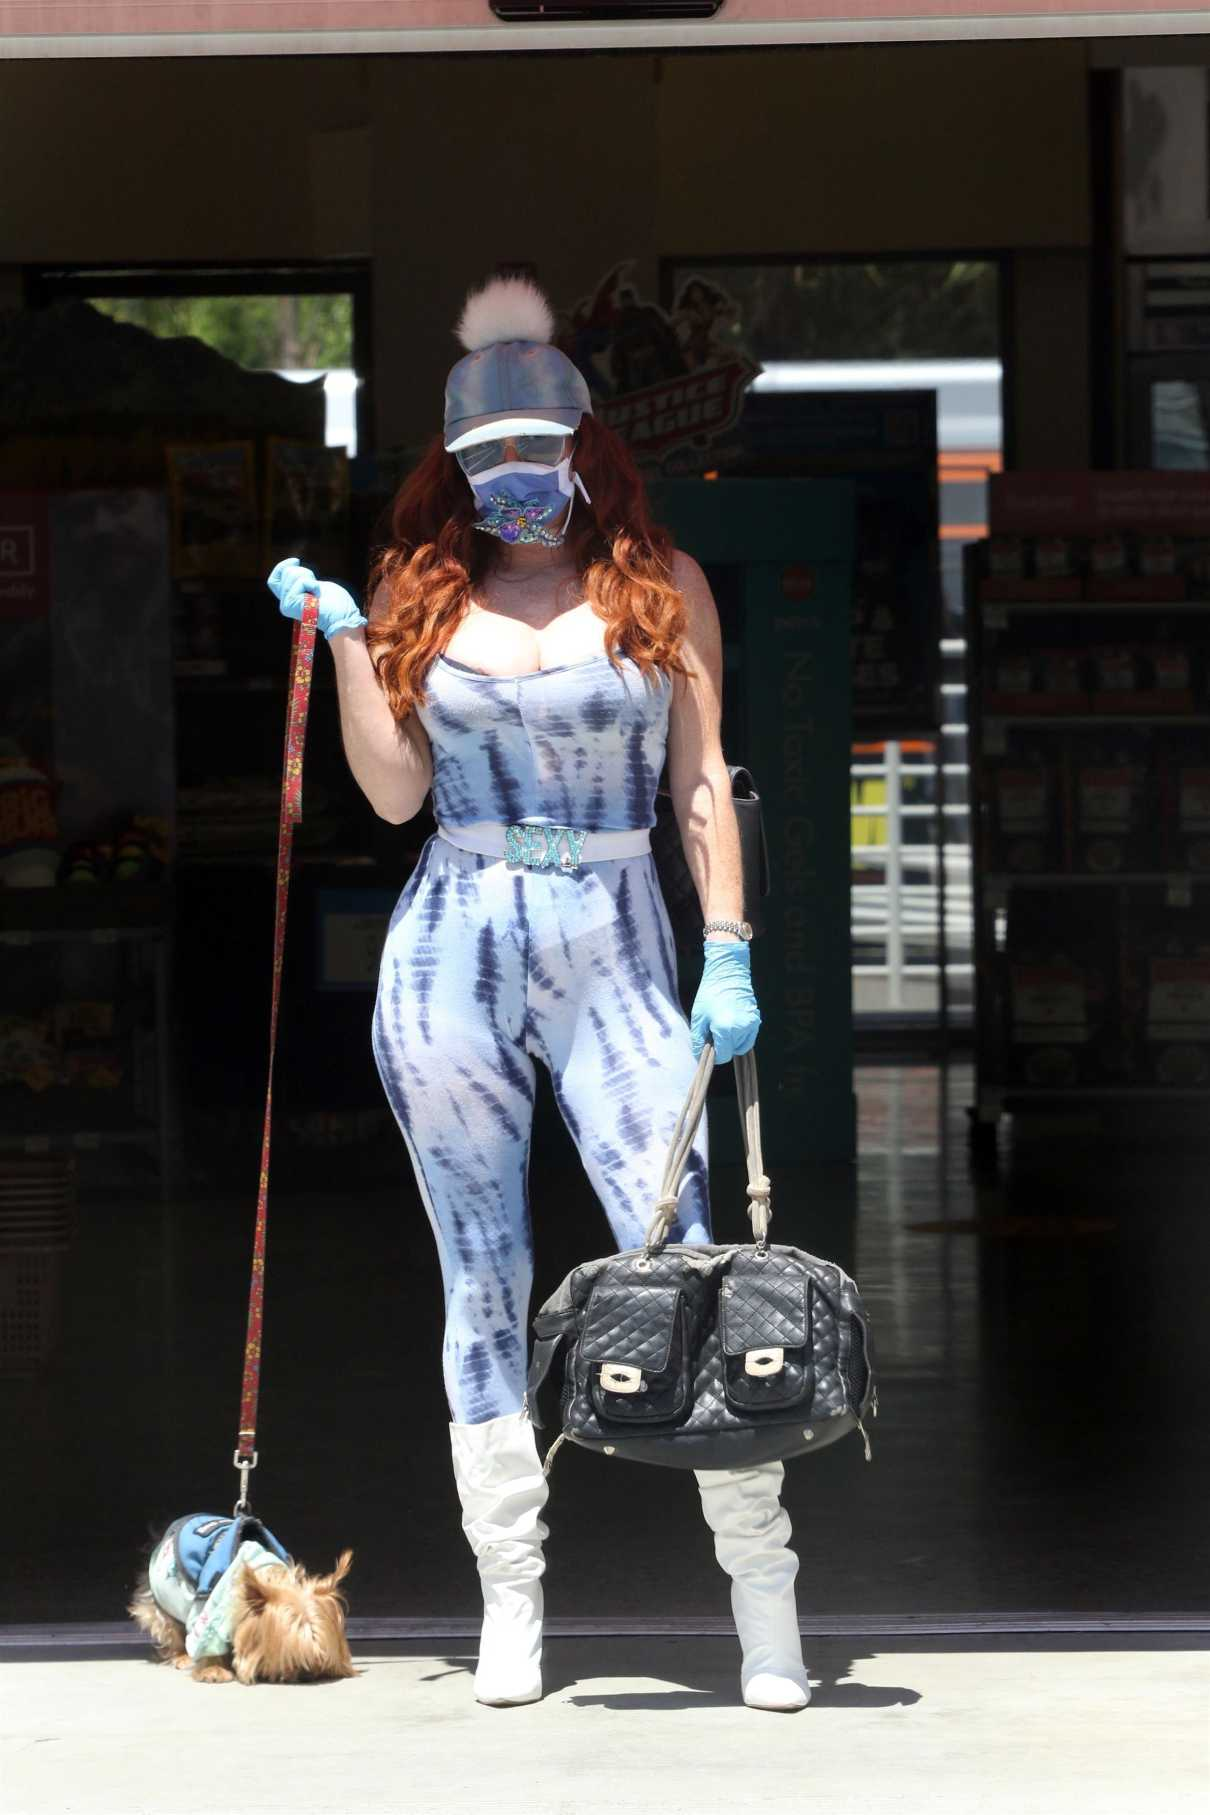 Phoebe Price in a Protective Mask